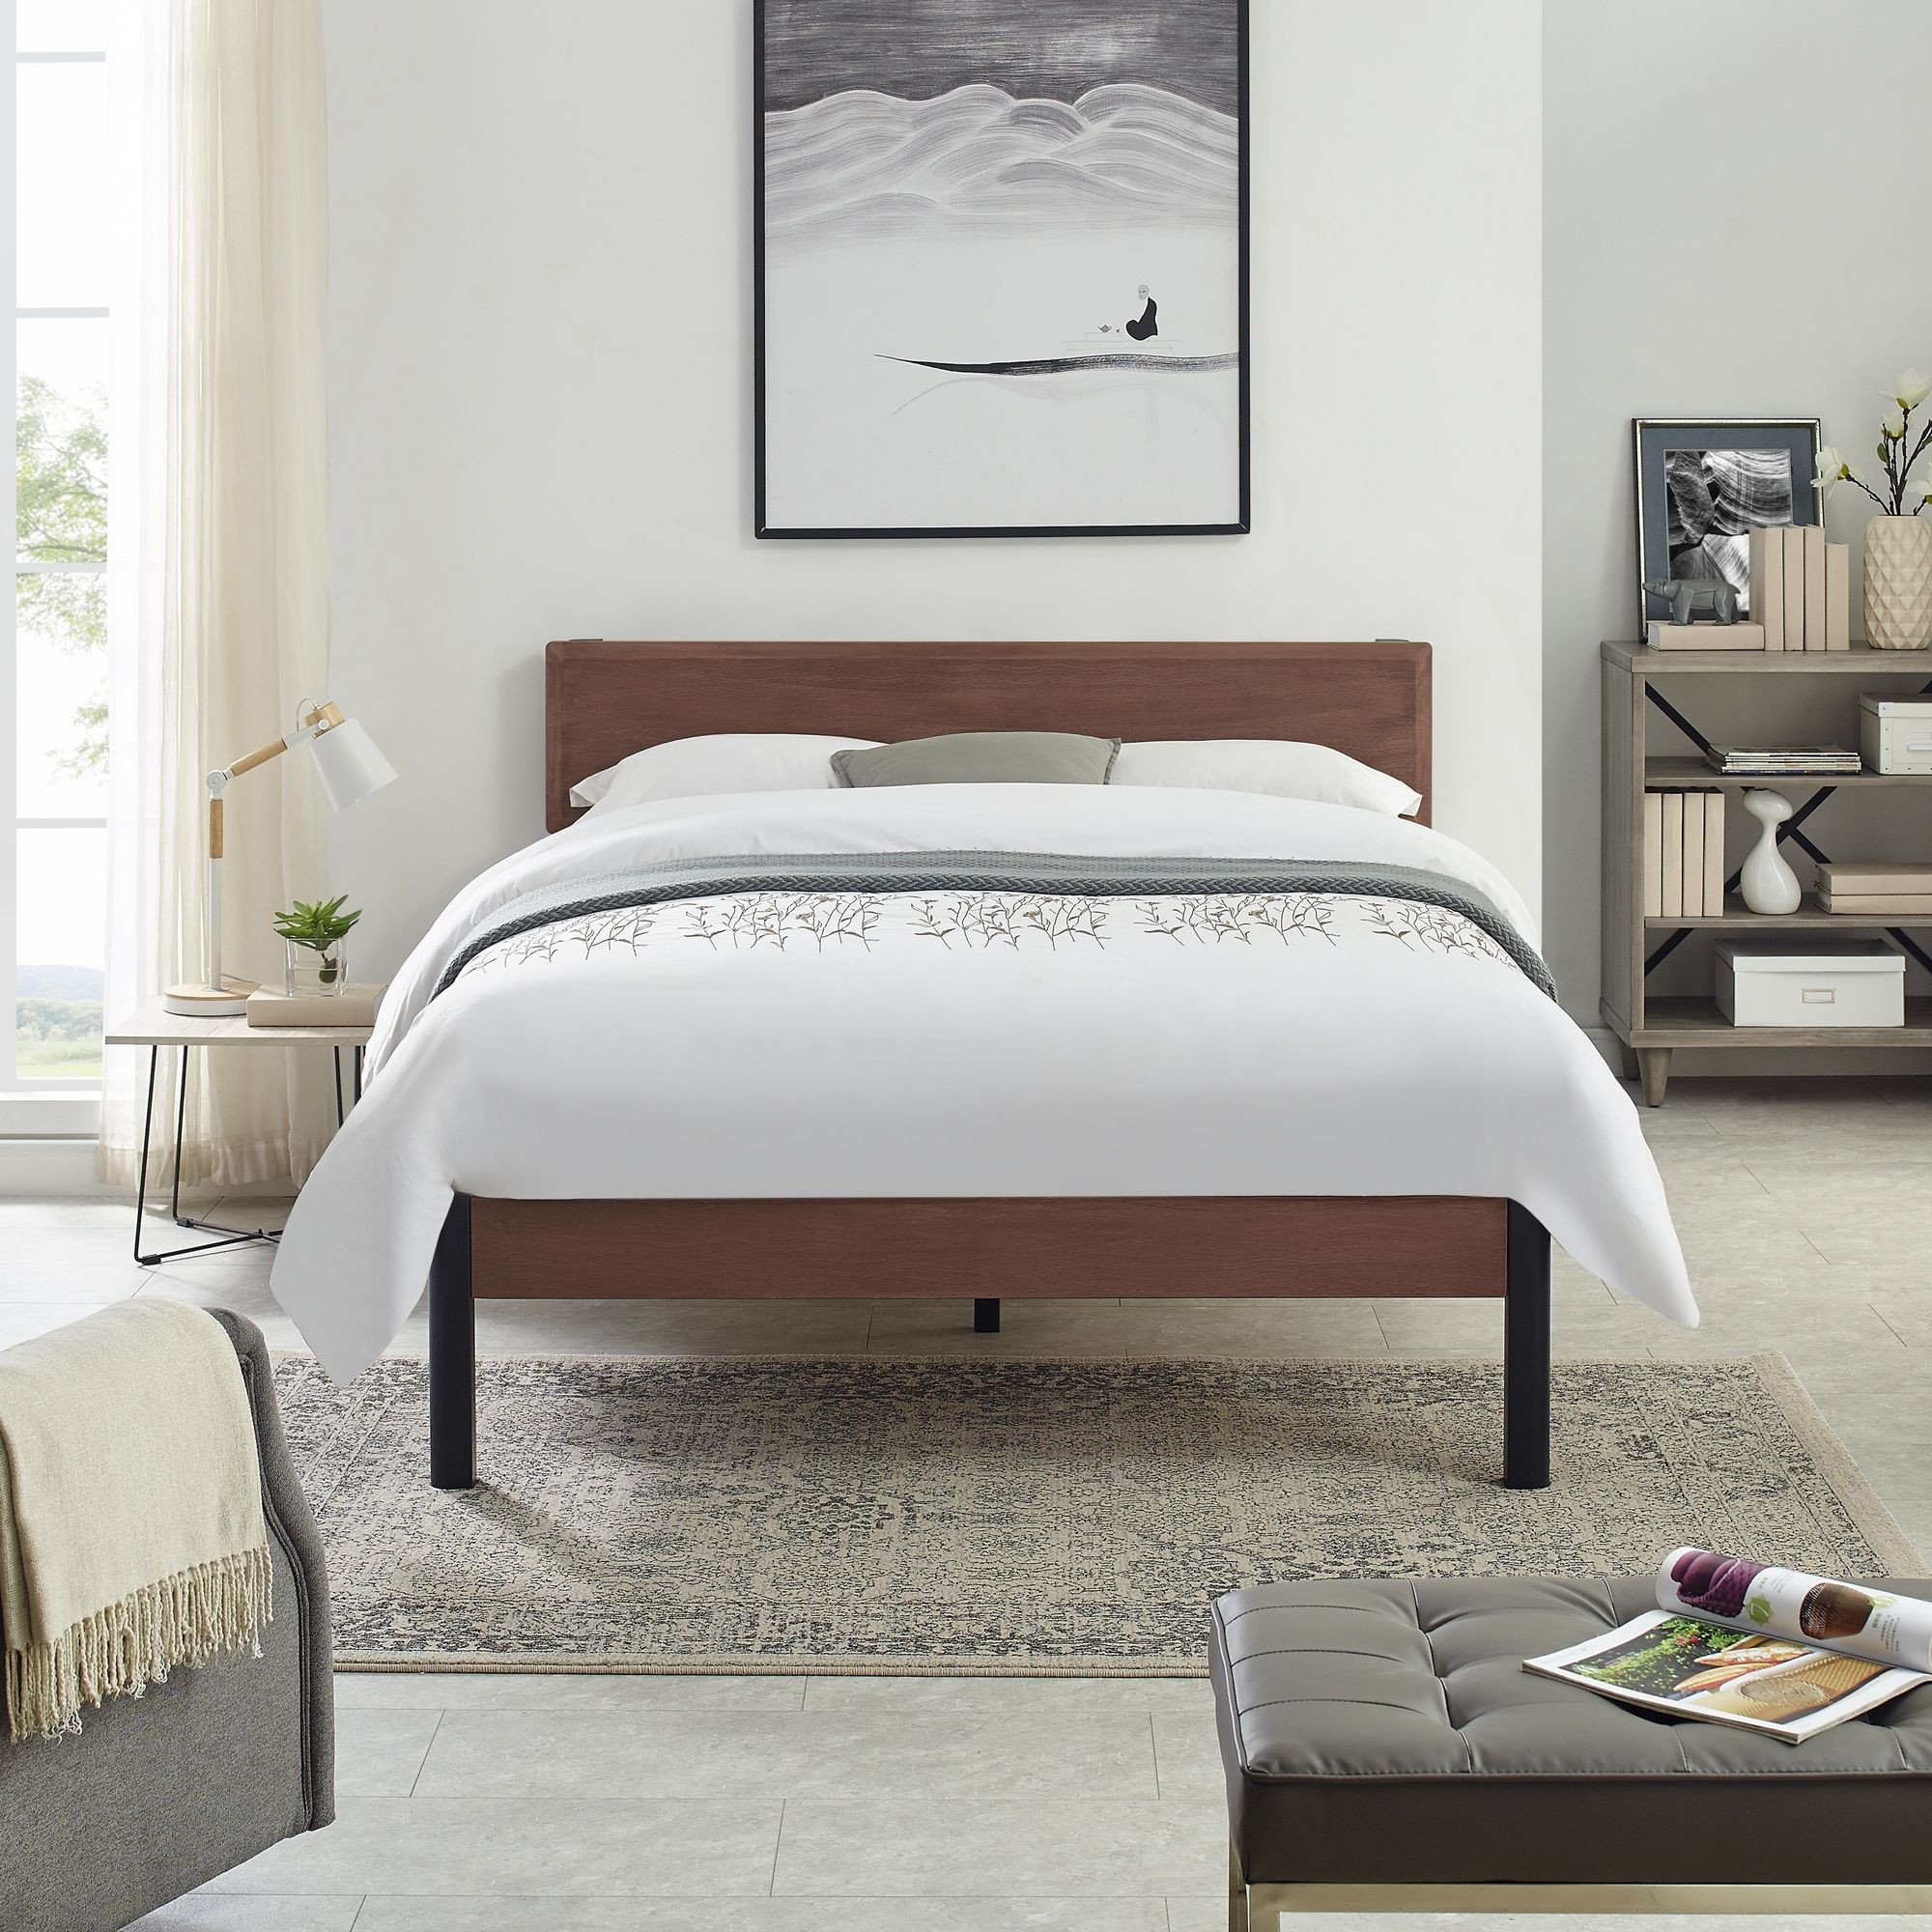 Wal Mart Bedroom Furniture New Home In 2020